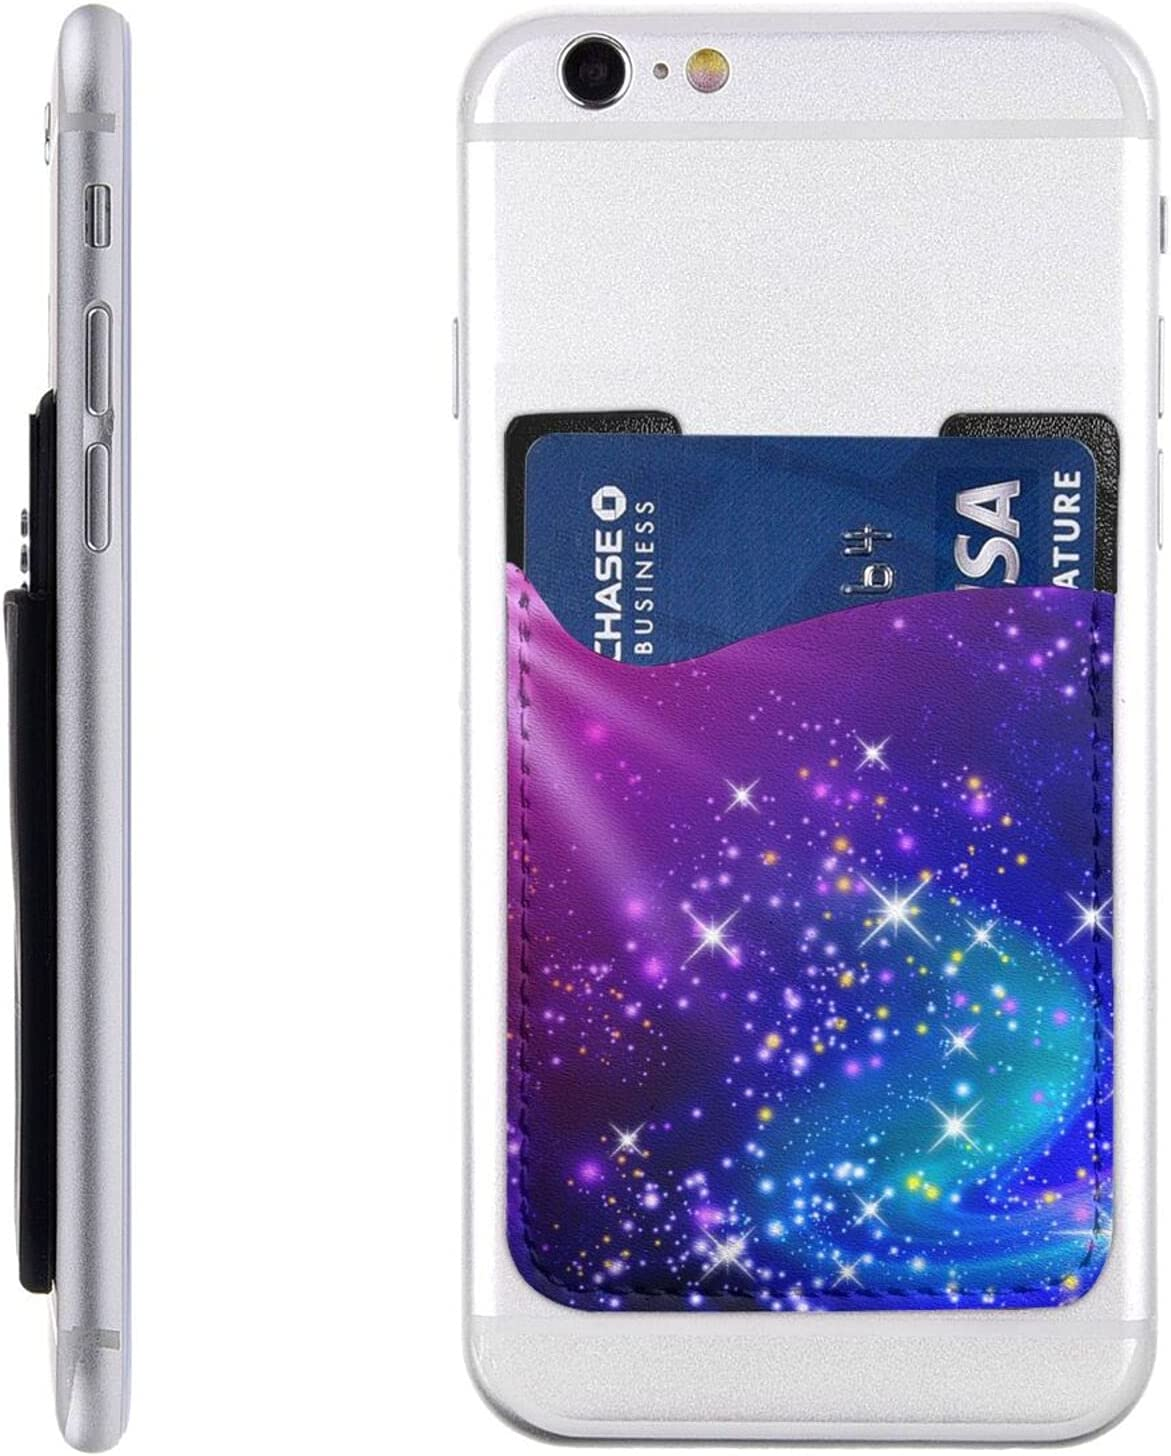 sold out Mysterious Stars Phone Card Holder Stick On Our shop OFFers the best service Cell Wall